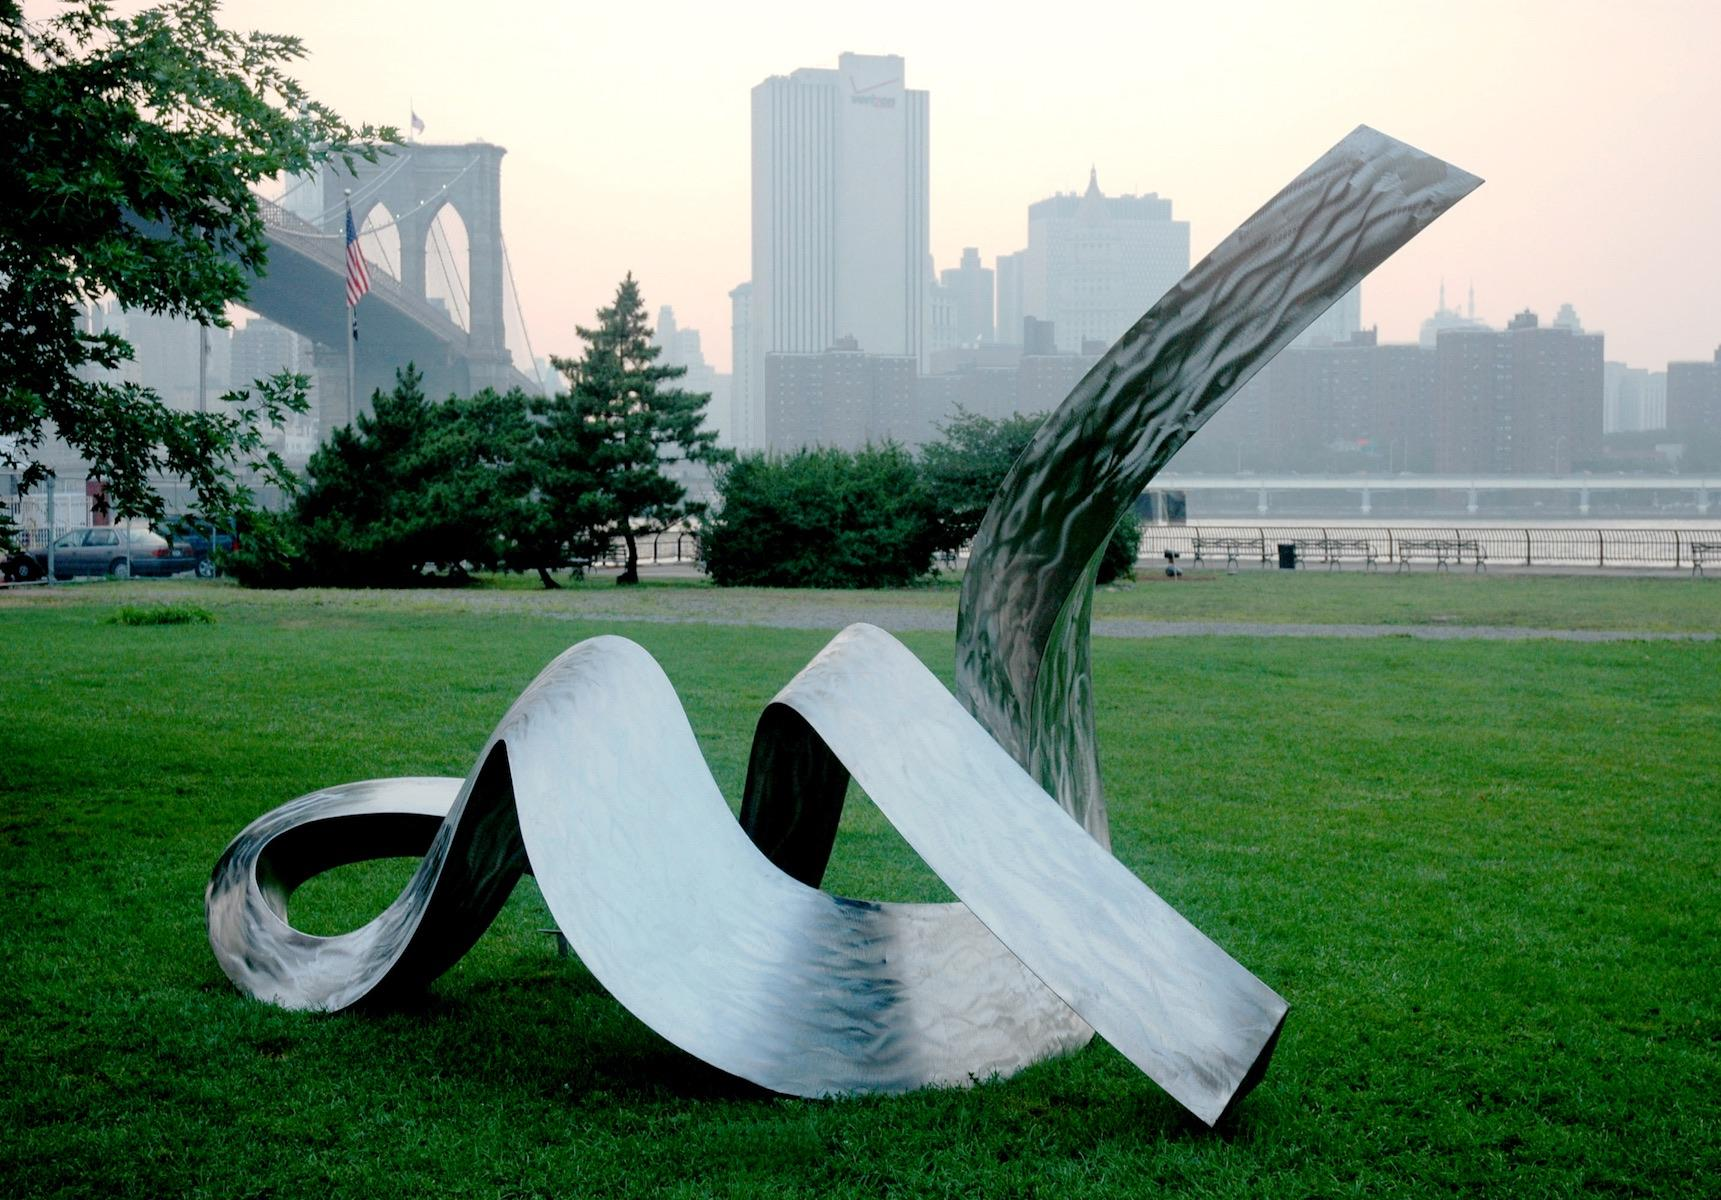 "<p>Reclining Nude Stainless steel 216"" W x 120""H x  84"" D 2005 (Image courtesy of Micajah Bienvenu).</p>"